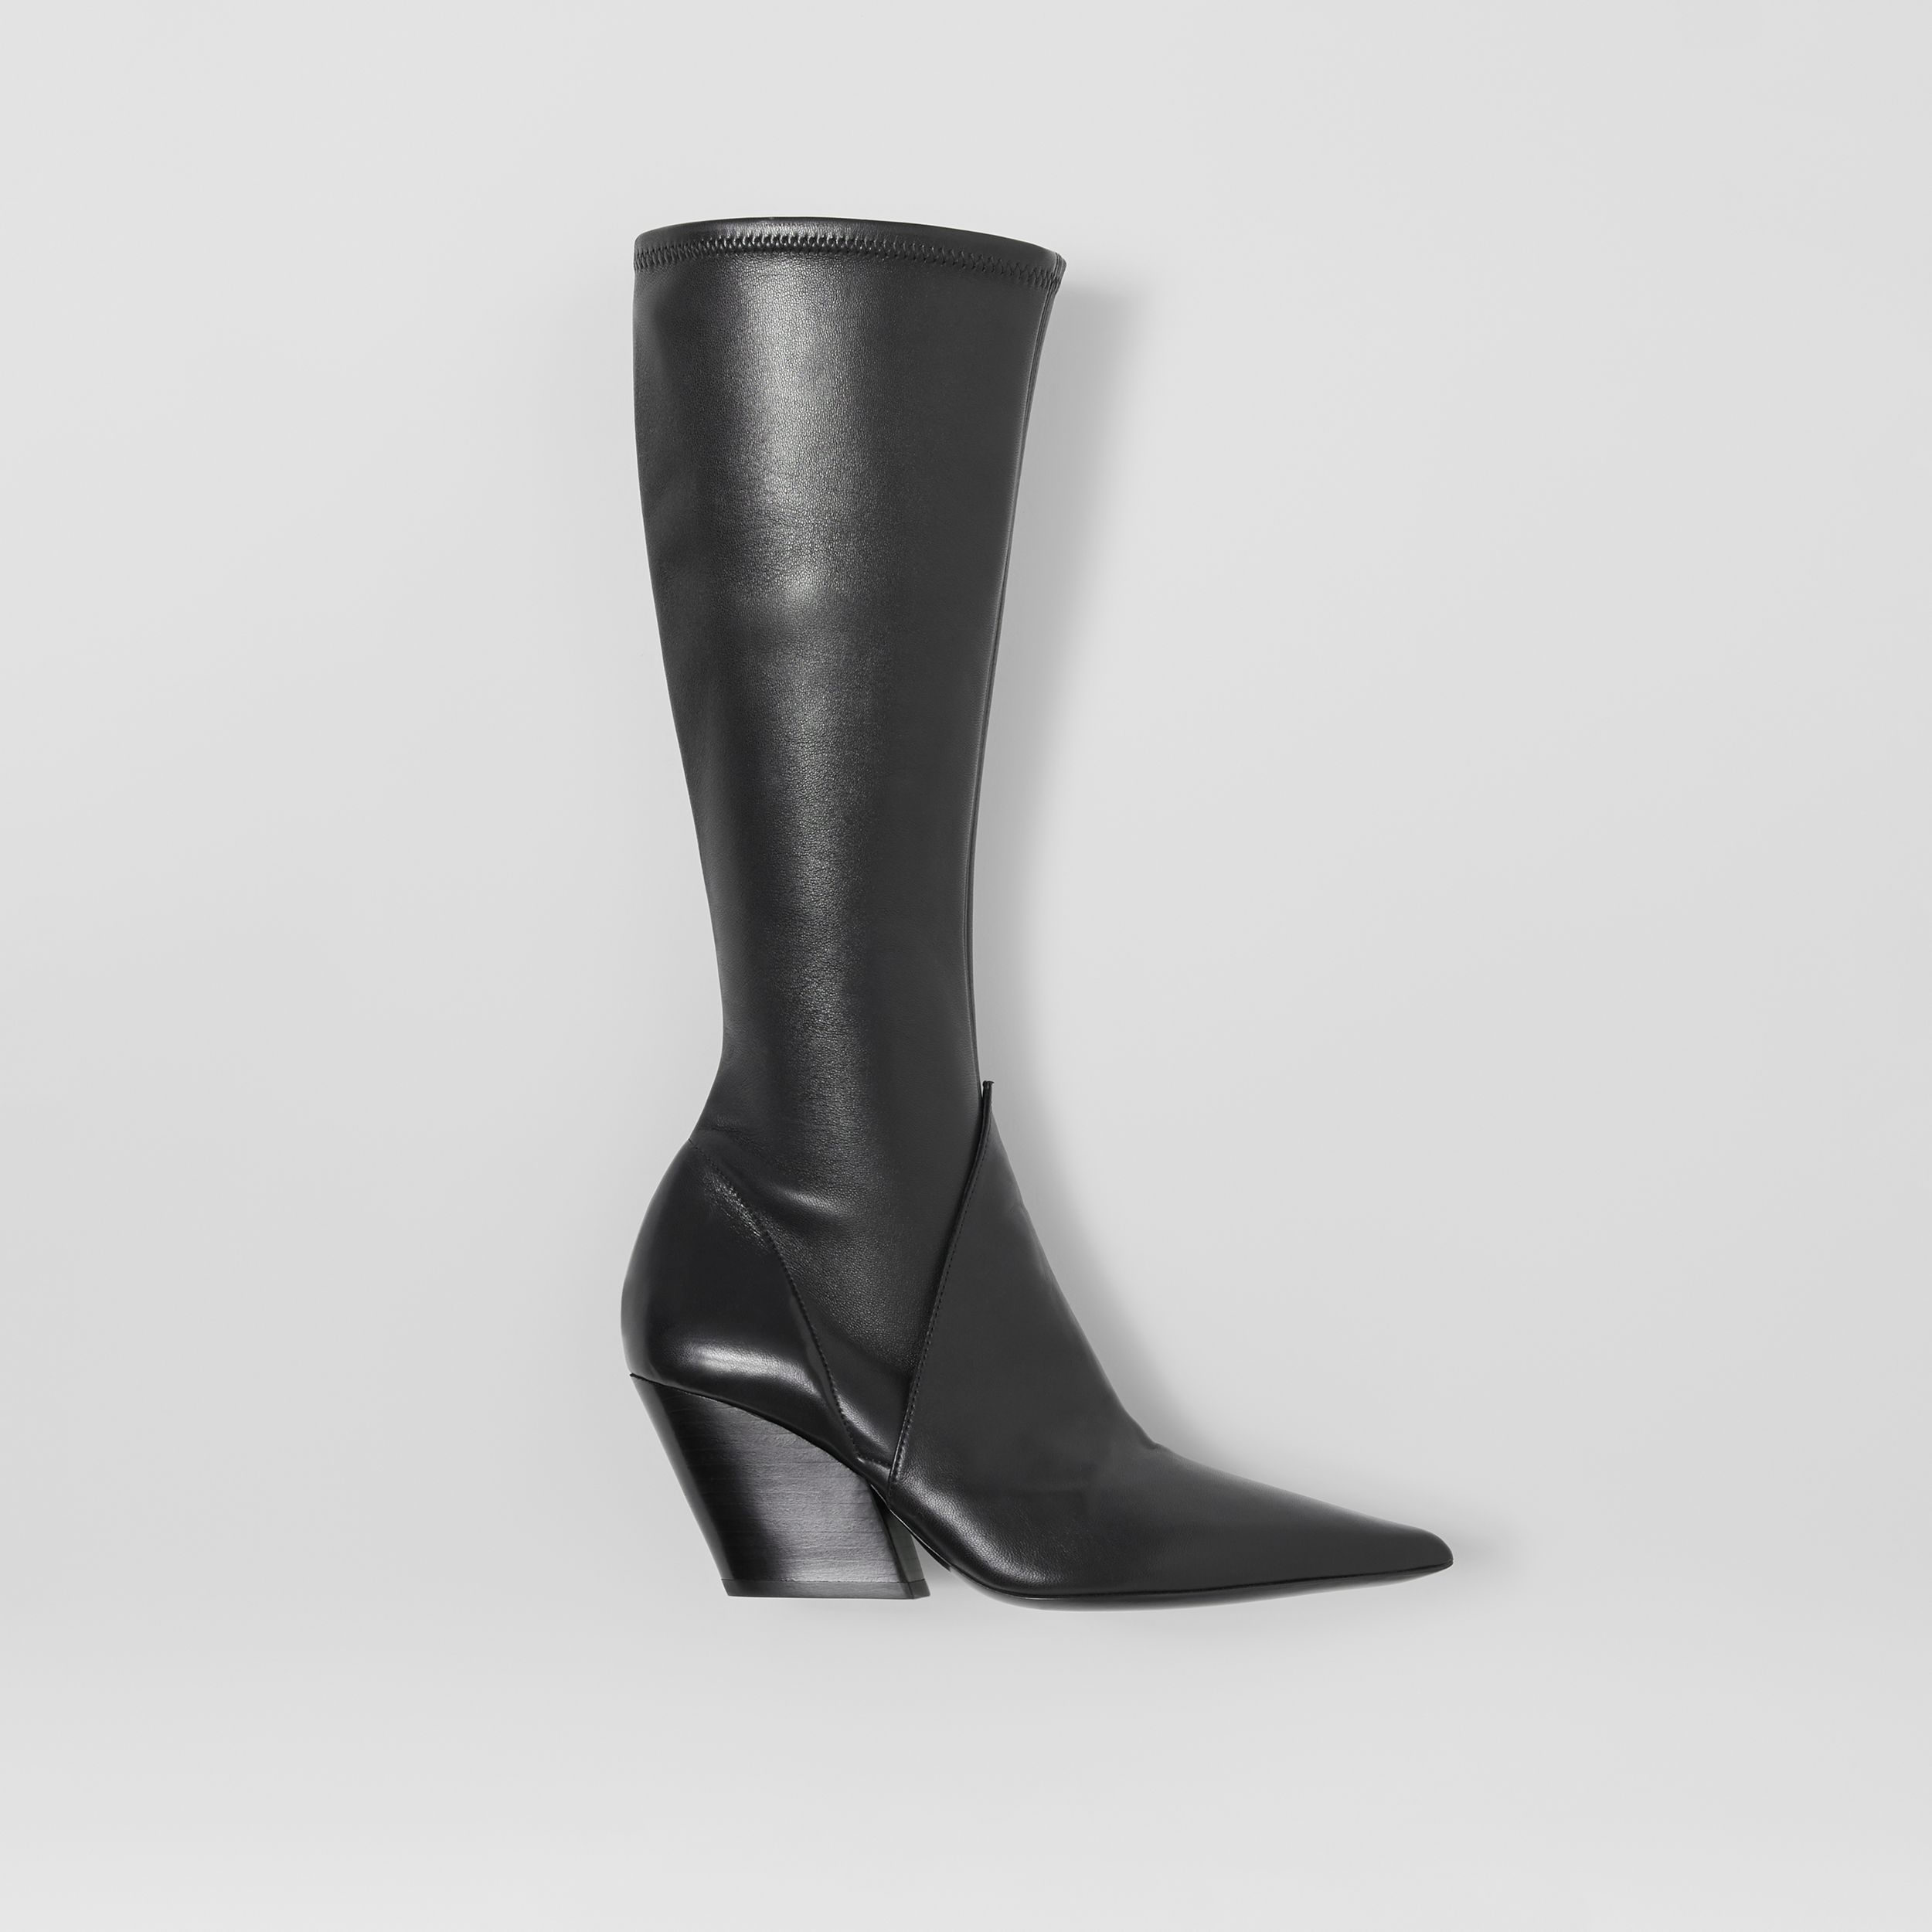 Panelled Lambskin Knee-high Boots in Black - Women | Burberry - 1